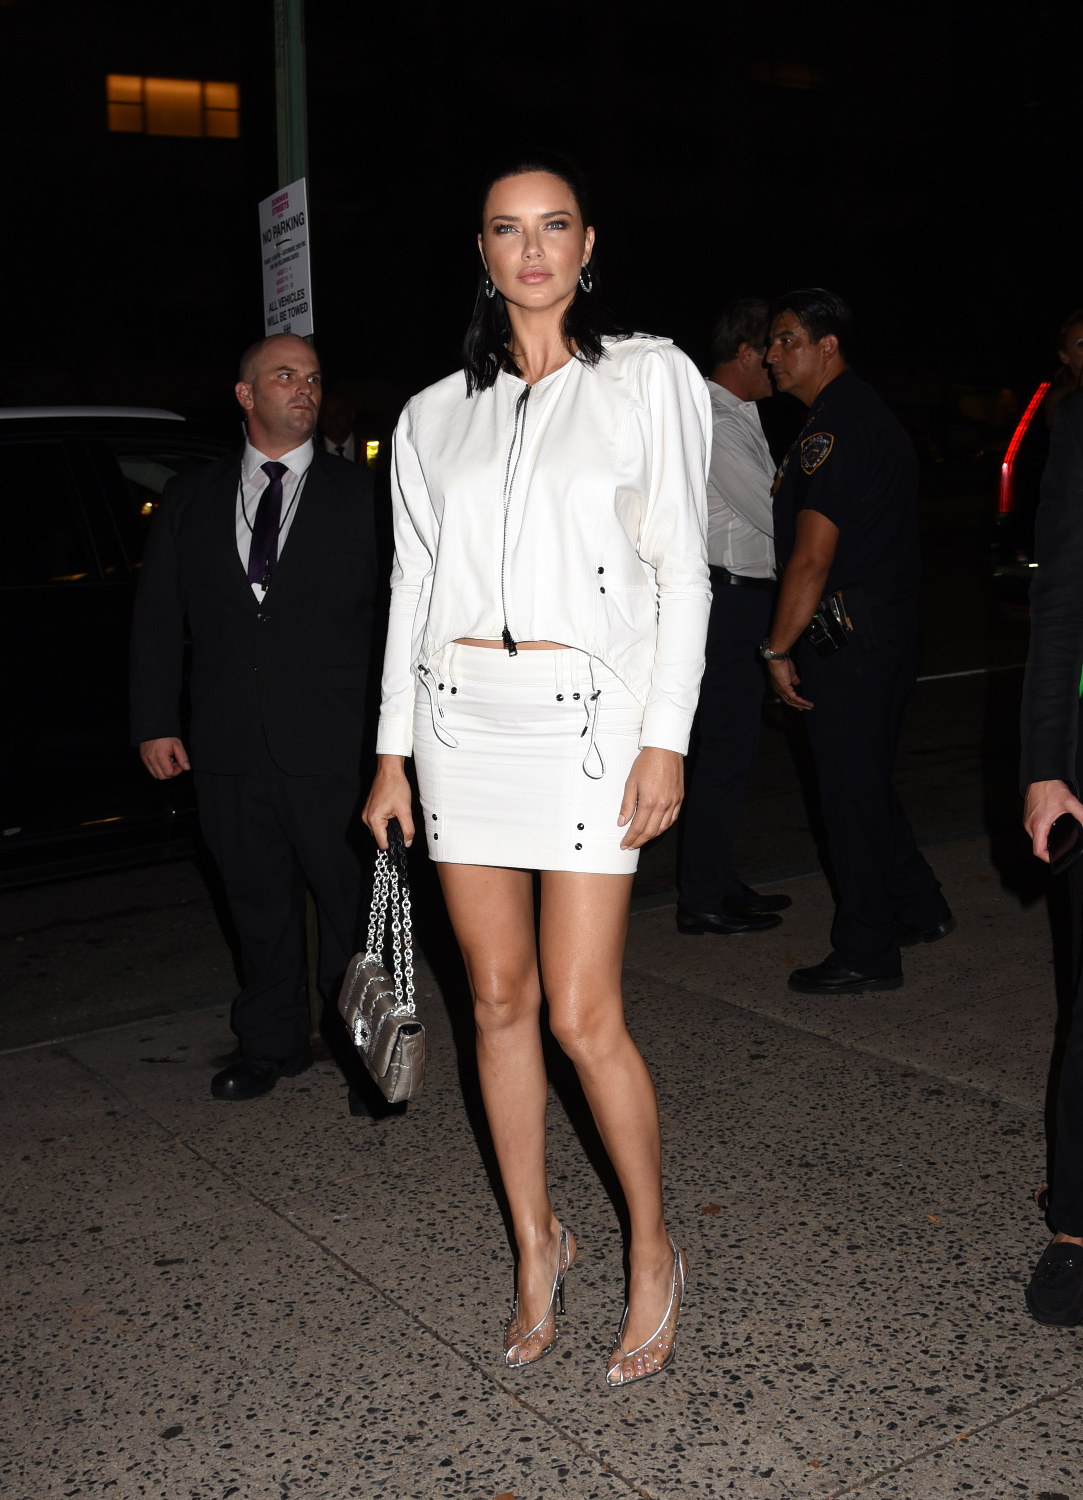 Celebrities attend the NYFW Tom Ford Spring/Summer 2019. Held @ Park Avenue Armory, New York City, NY. September 5, 2018. ? Photo Image Press/Splash News  Pictured: Adriana Lima Ref: SPL5021148 050918 NON-EXCLUSIVE Picture by: Photo Image Press/Splash News / SplashNews.com  Splash News and Pictures Los Angeles: 310-821-2666 New York: 212-619-2666 London: 0207 644 7656 Milan: +39 02 4399 8577 Sydney: +61 02 9240 7700 photodesk@splashnews.com  World Rights